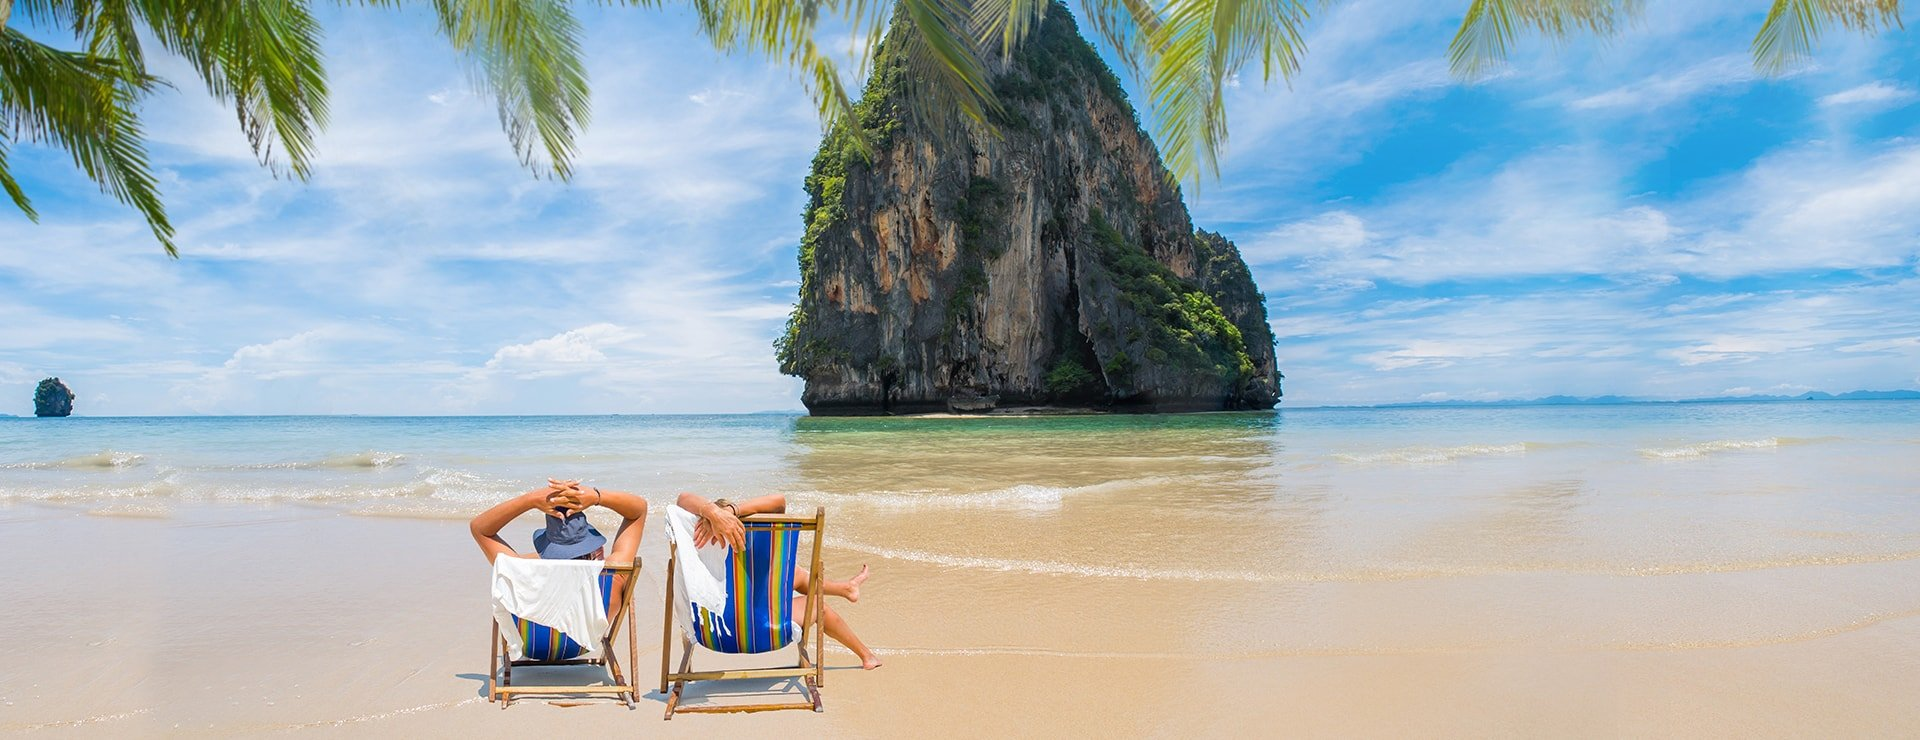 Need To Take A Deep Thailand Ocean's Breath? Head To These 5 Beaches